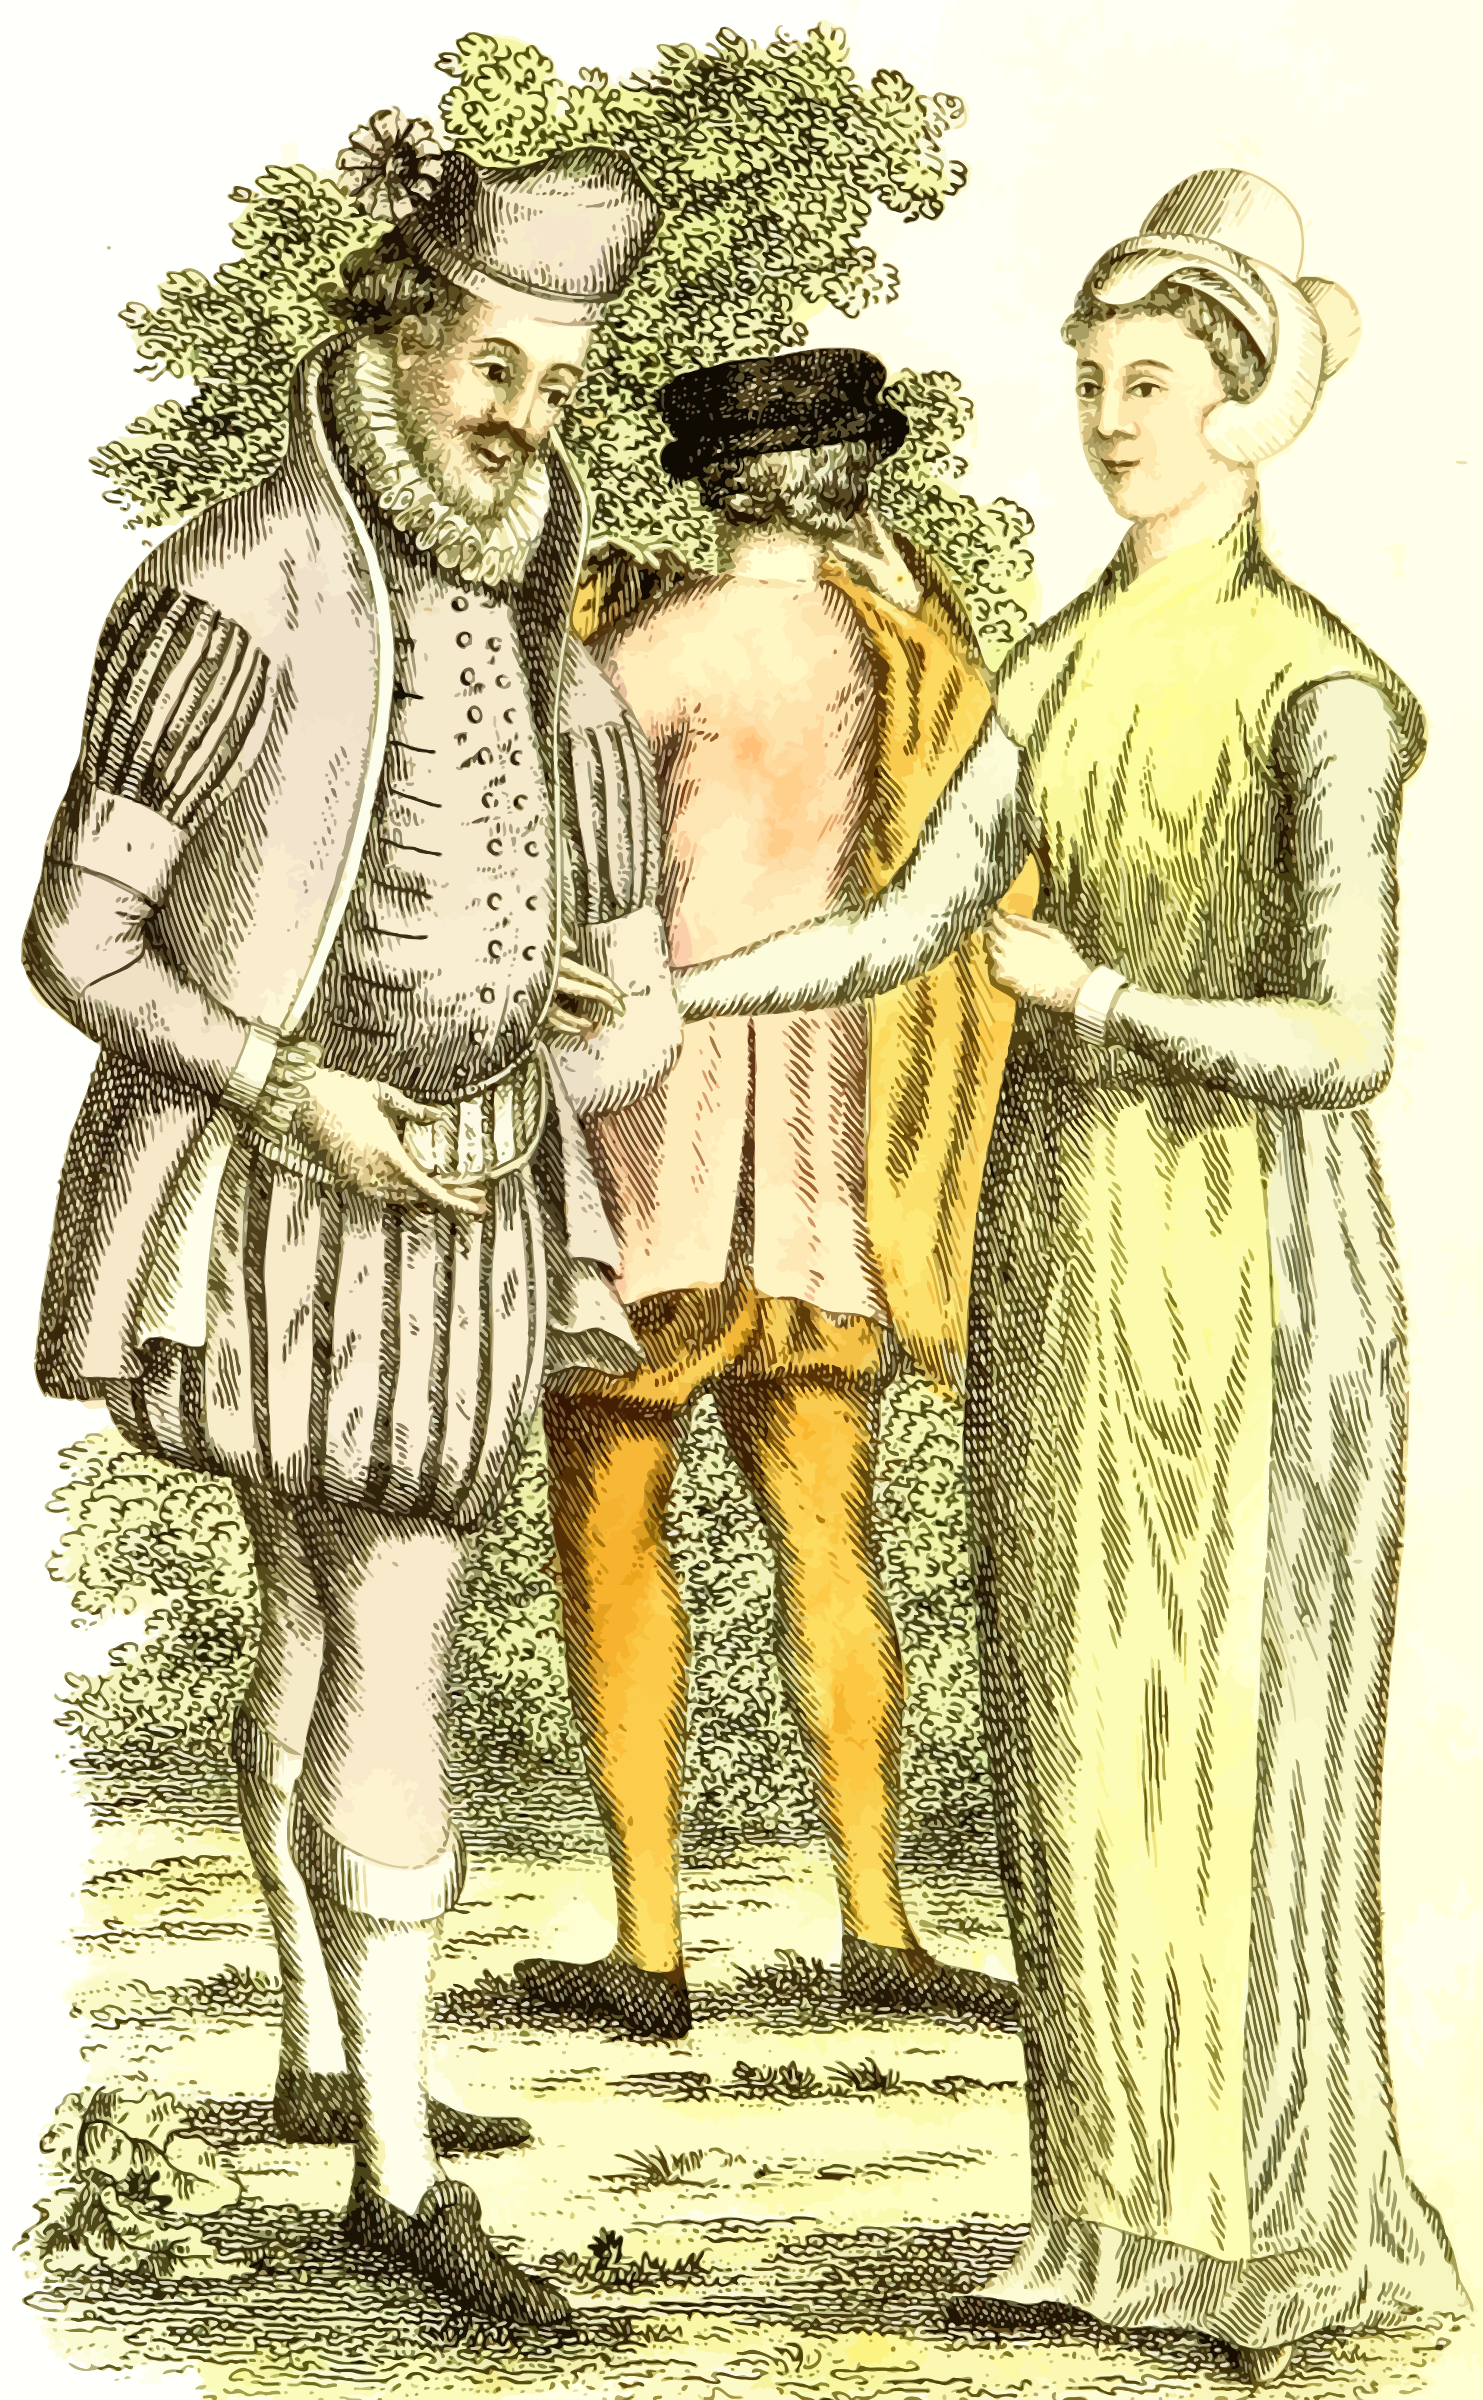 16th century dress by Firkin